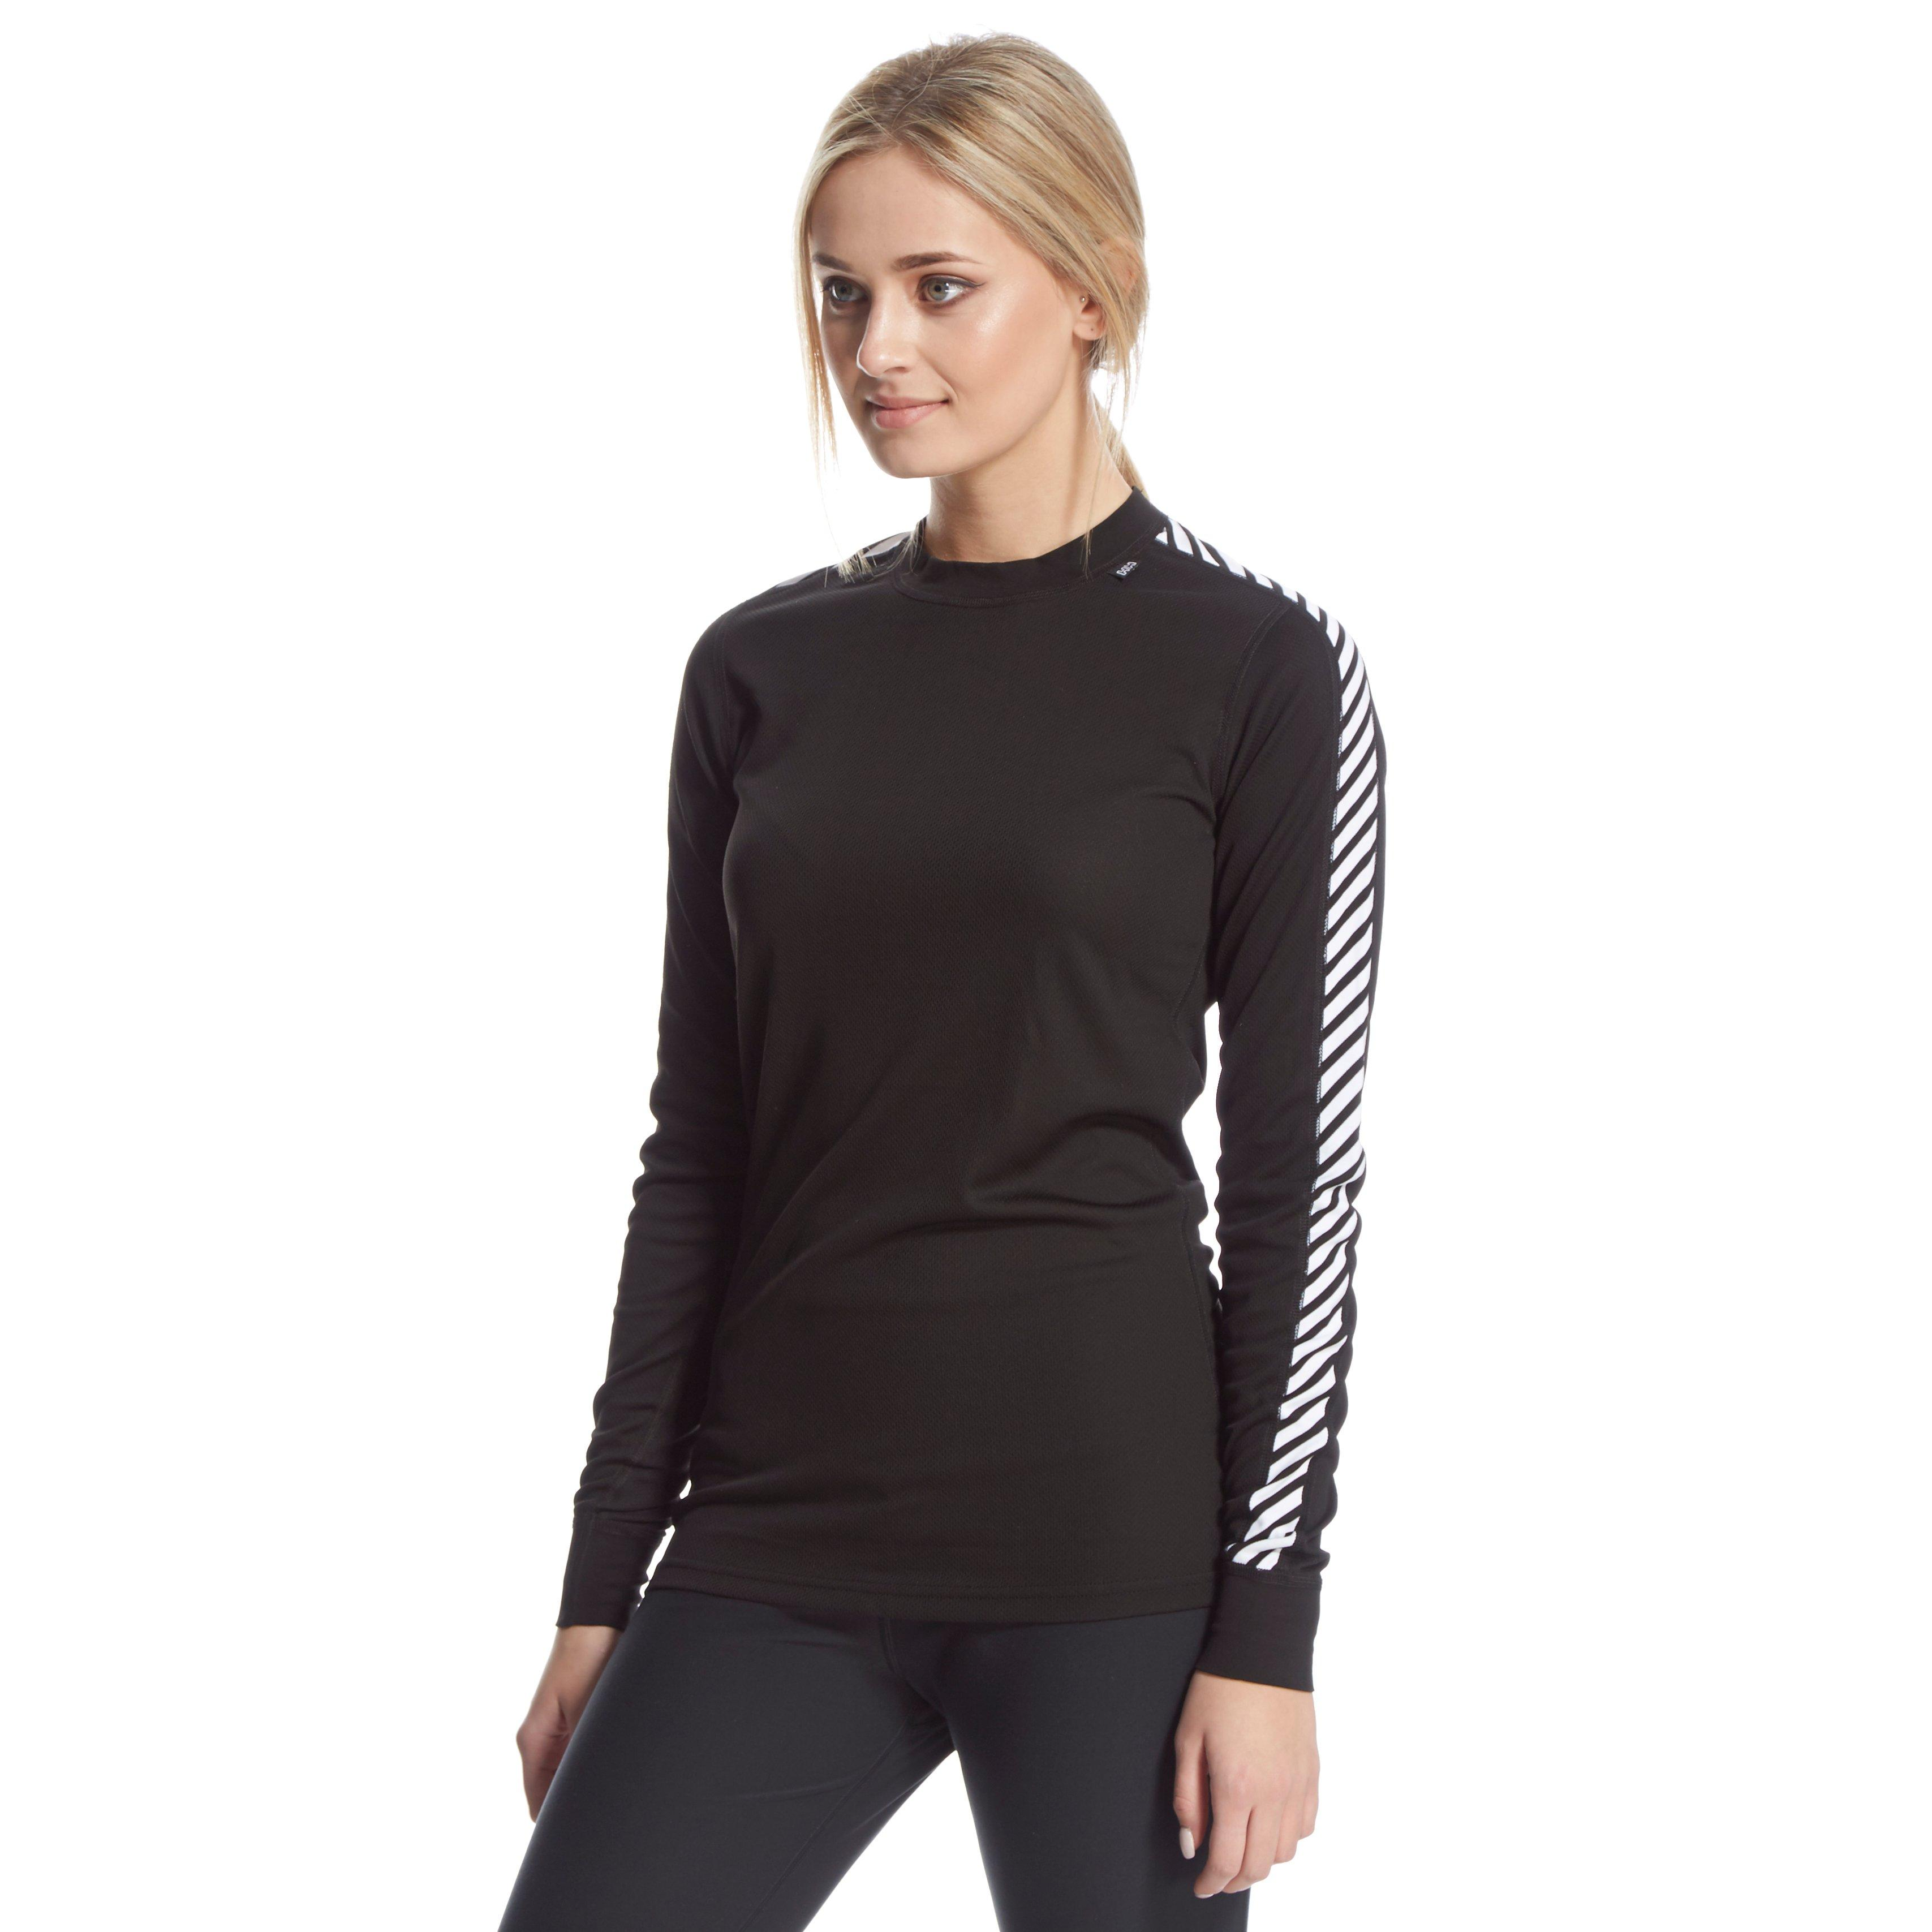 Helly Hansen Women's Dry Original Crew Base Layer, Black